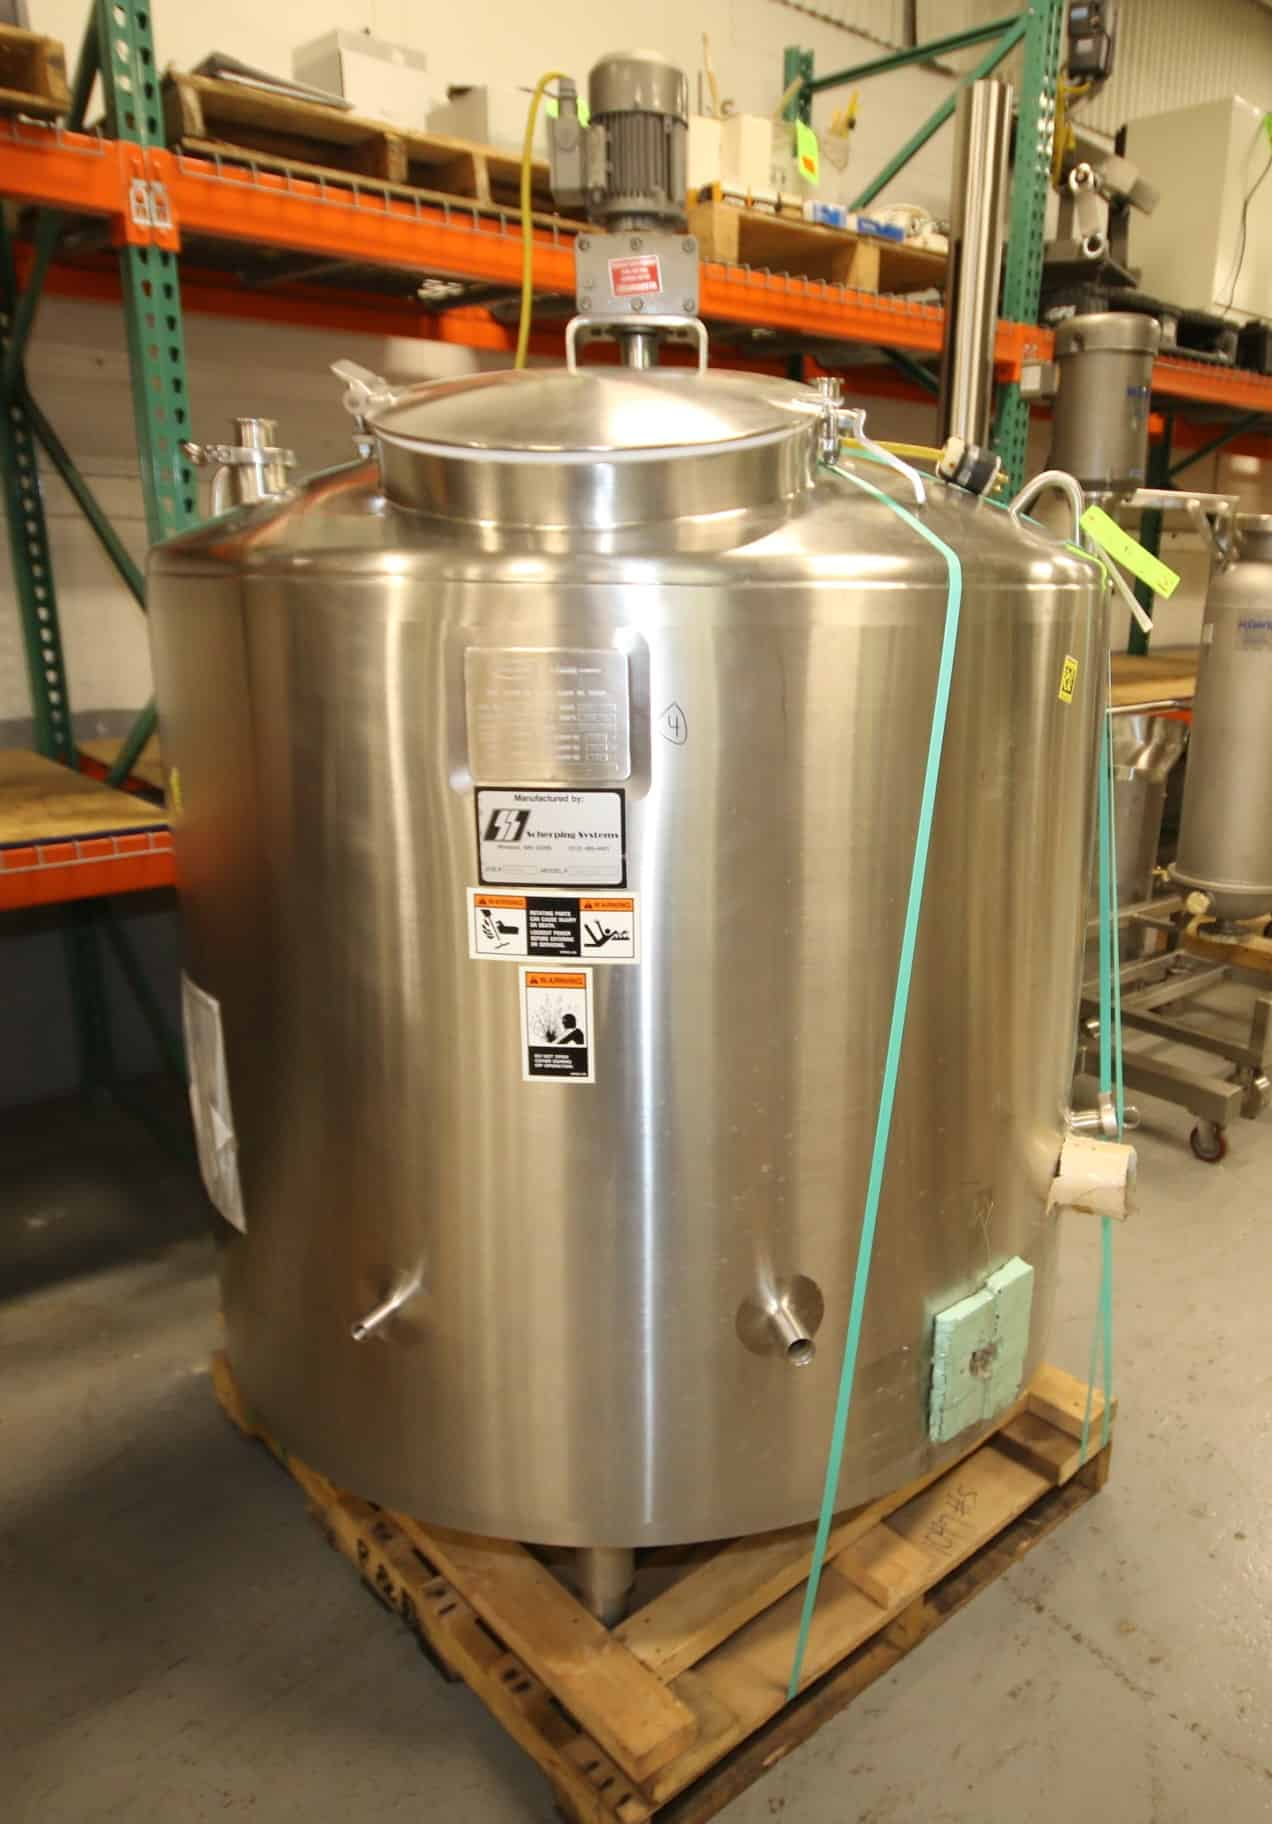 "Walker 200 Gal Dome Top S/S Processor / Cheese Starter Tank, Model PZ, SN SPG-15138, with Bottom Sweep Agitator with Nord .37 KW @ 30 RPM Drive Motor - 230/460V 3 Phase, Baffle, Dual Sprayball, Top Hinged Mandoor, All S/S Bottom, Heating - 15 psig mawp @ 250 degree F, Cool - 100 psig @ 100 degree F, (Overall Diam. - 54"" W x 7 ft H)"